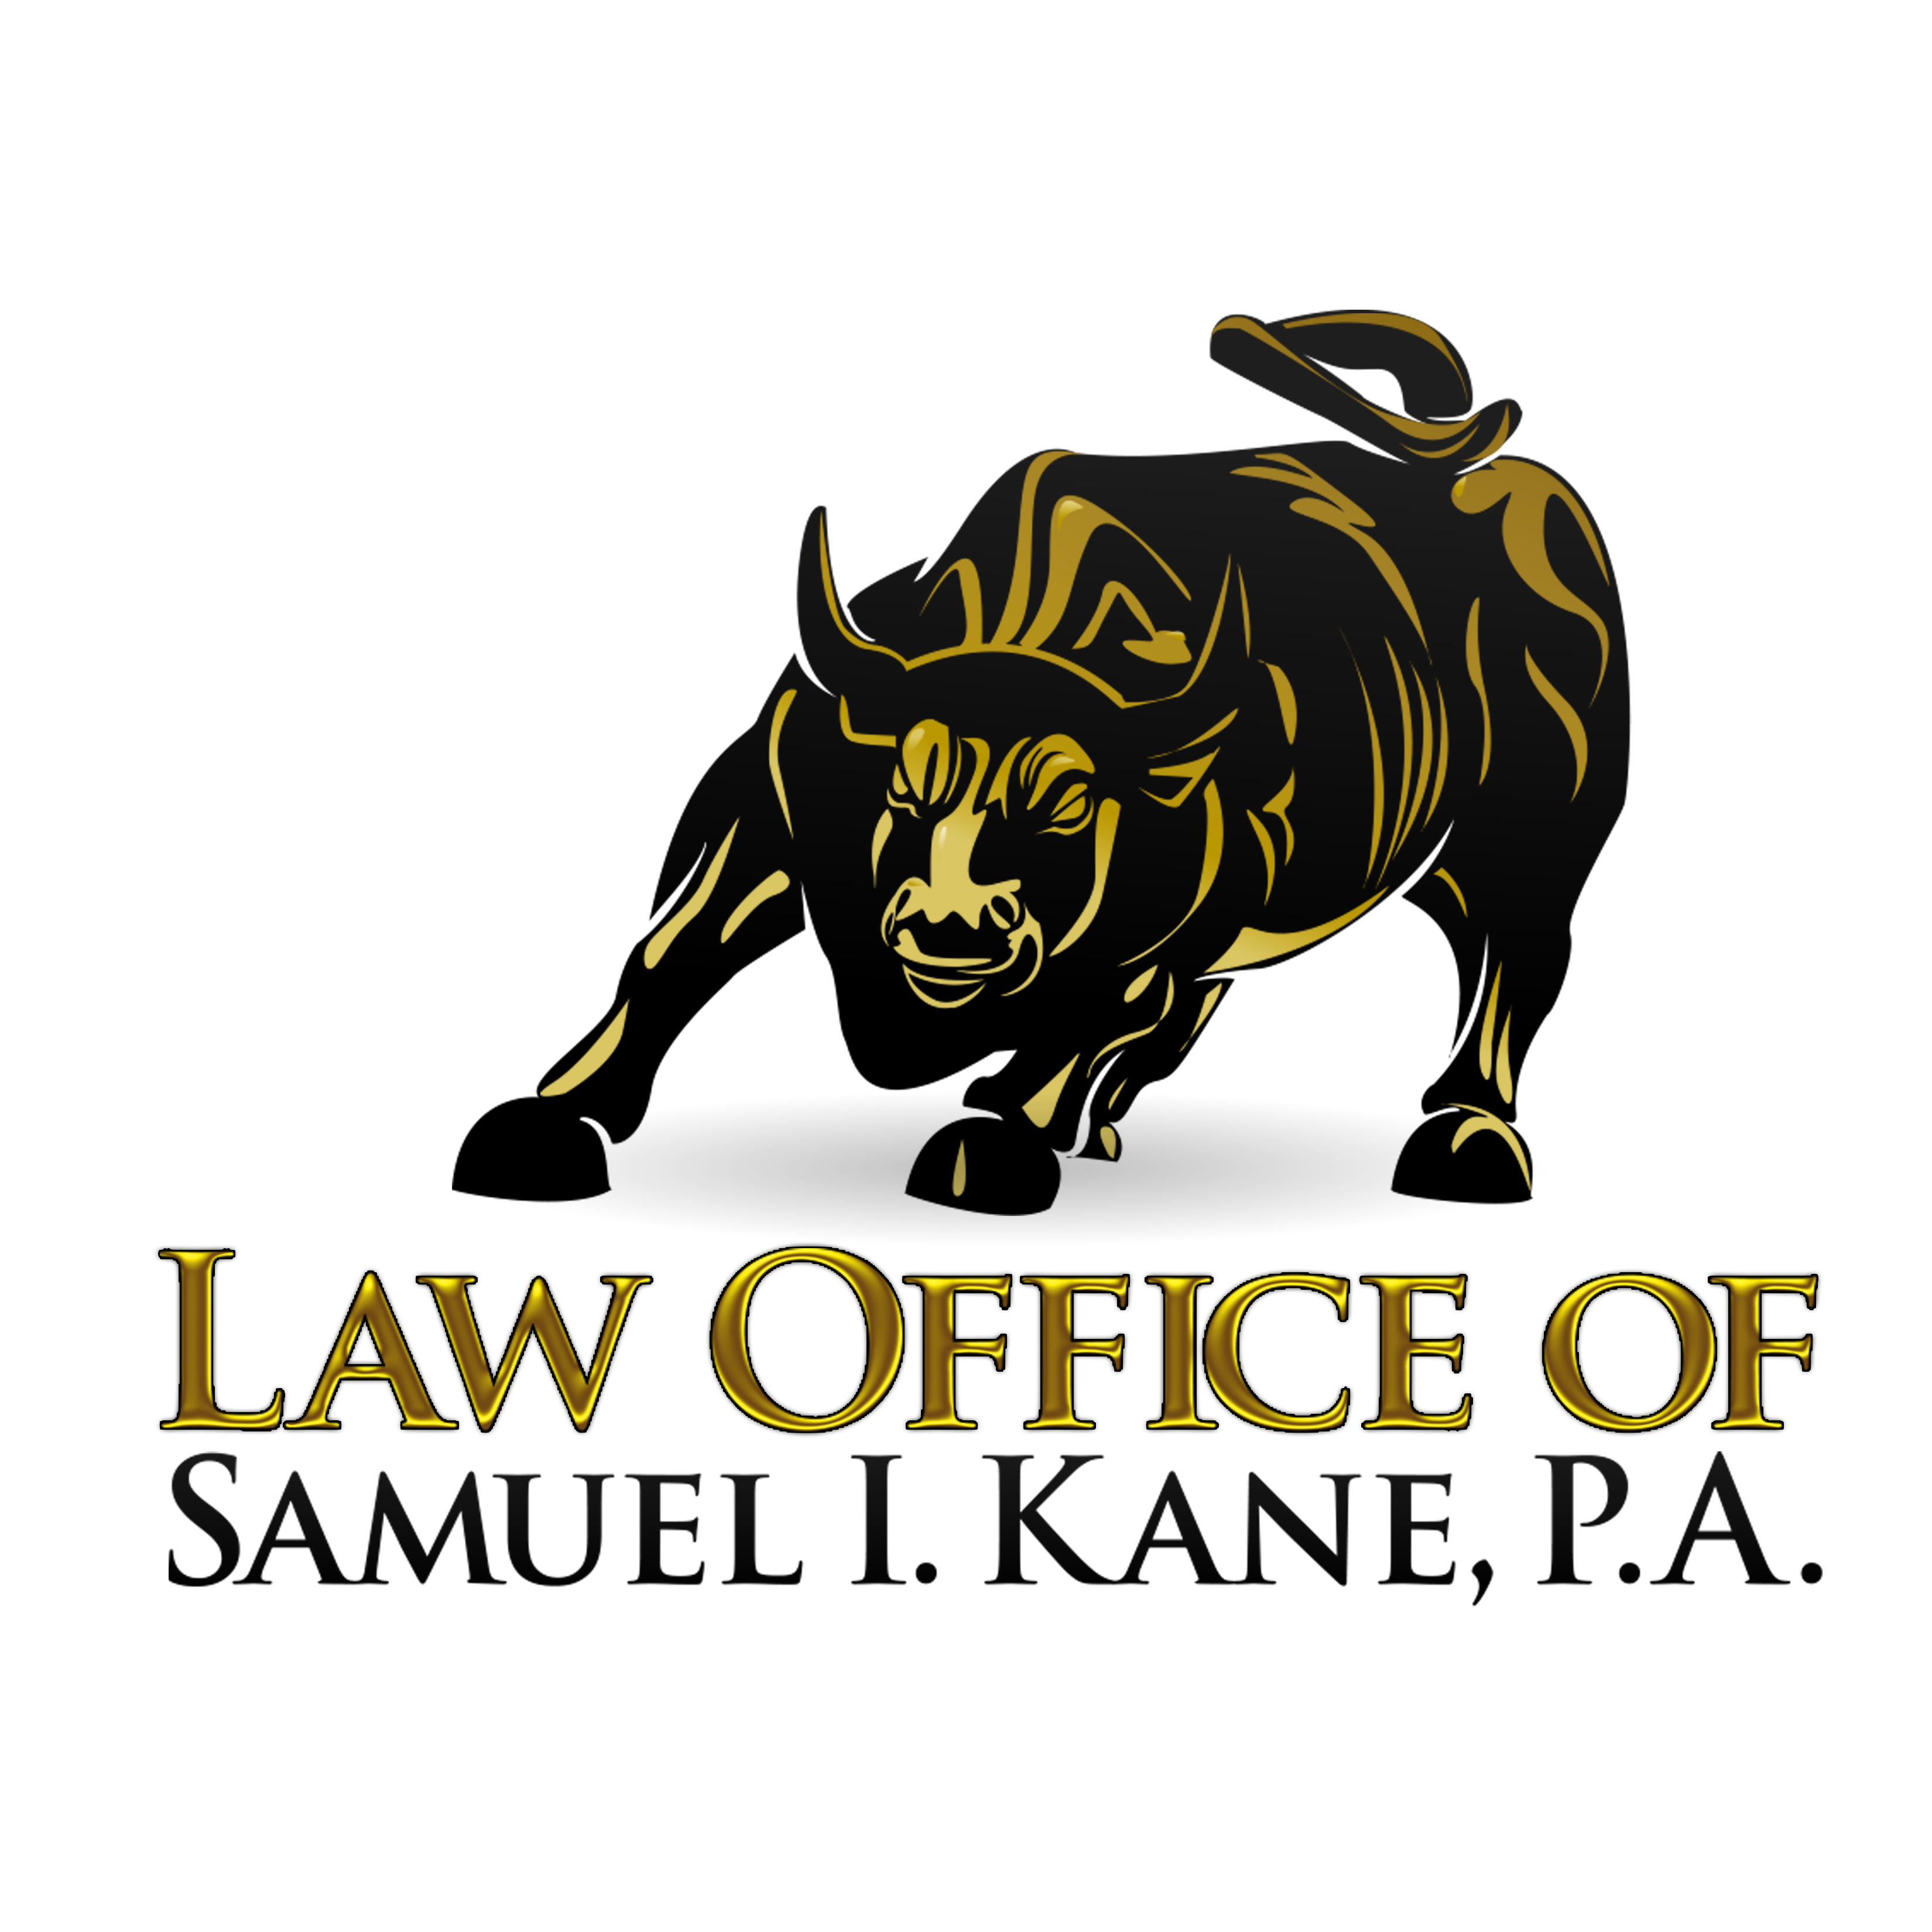 Law Office of Samuel I. Kane, P.A. - Las Cruces, NM 88001 - (575)526-5263   ShowMeLocal.com